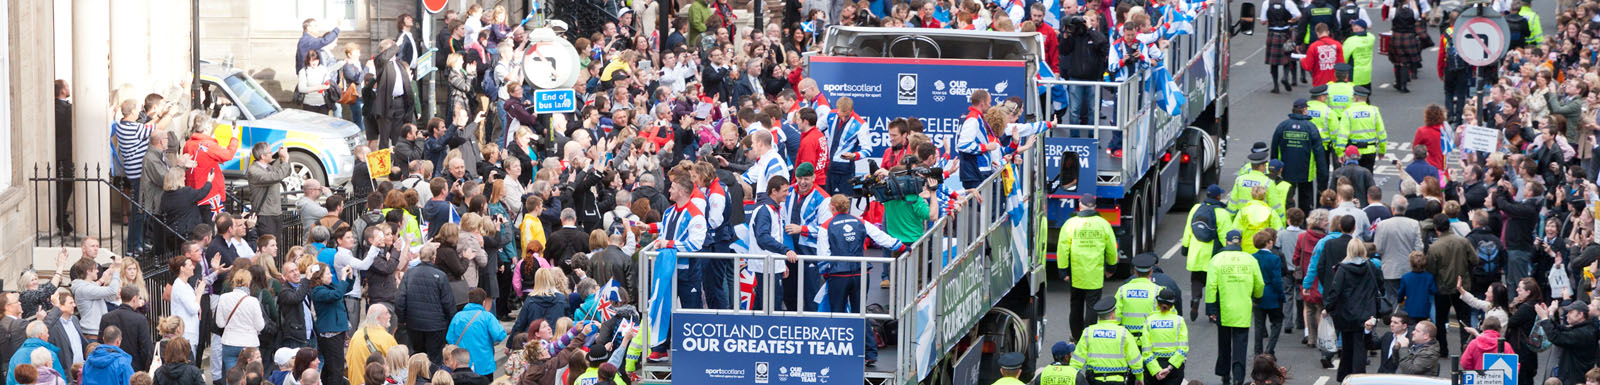 12 reasons to celebrate, the Scottish athletes return home from the Olympics